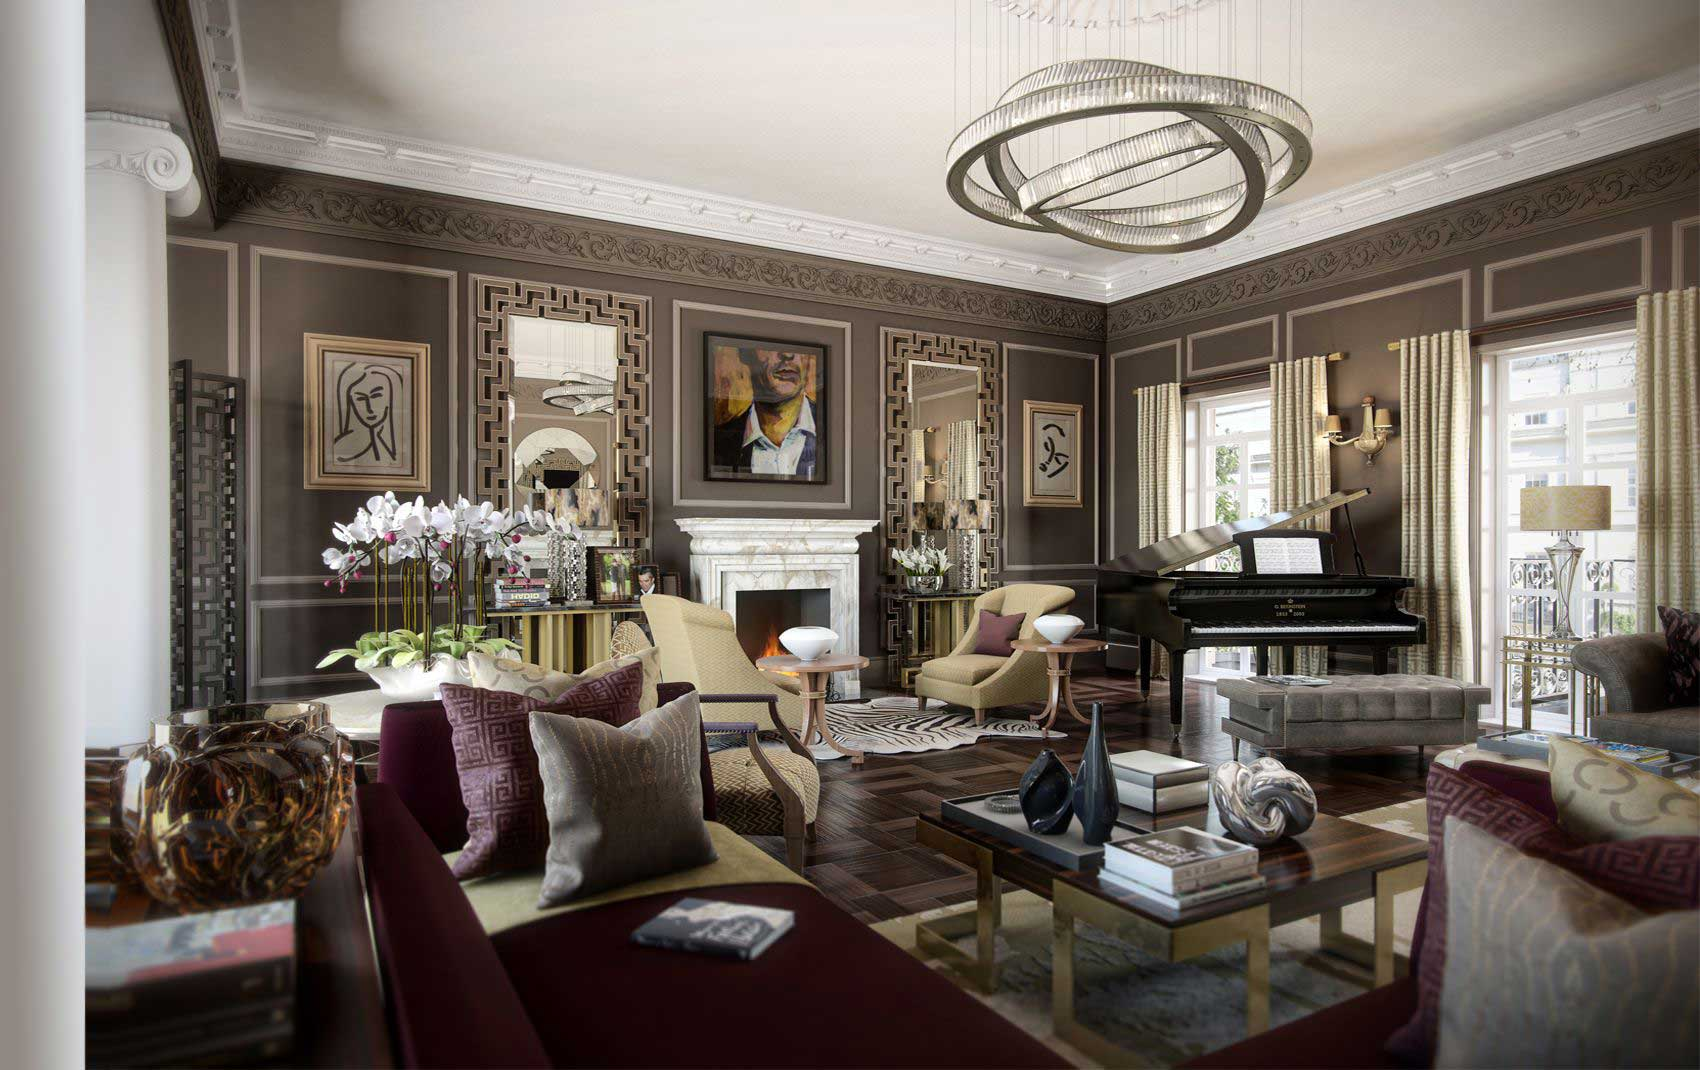 Luxury interior design in london london interior design for Design firms london